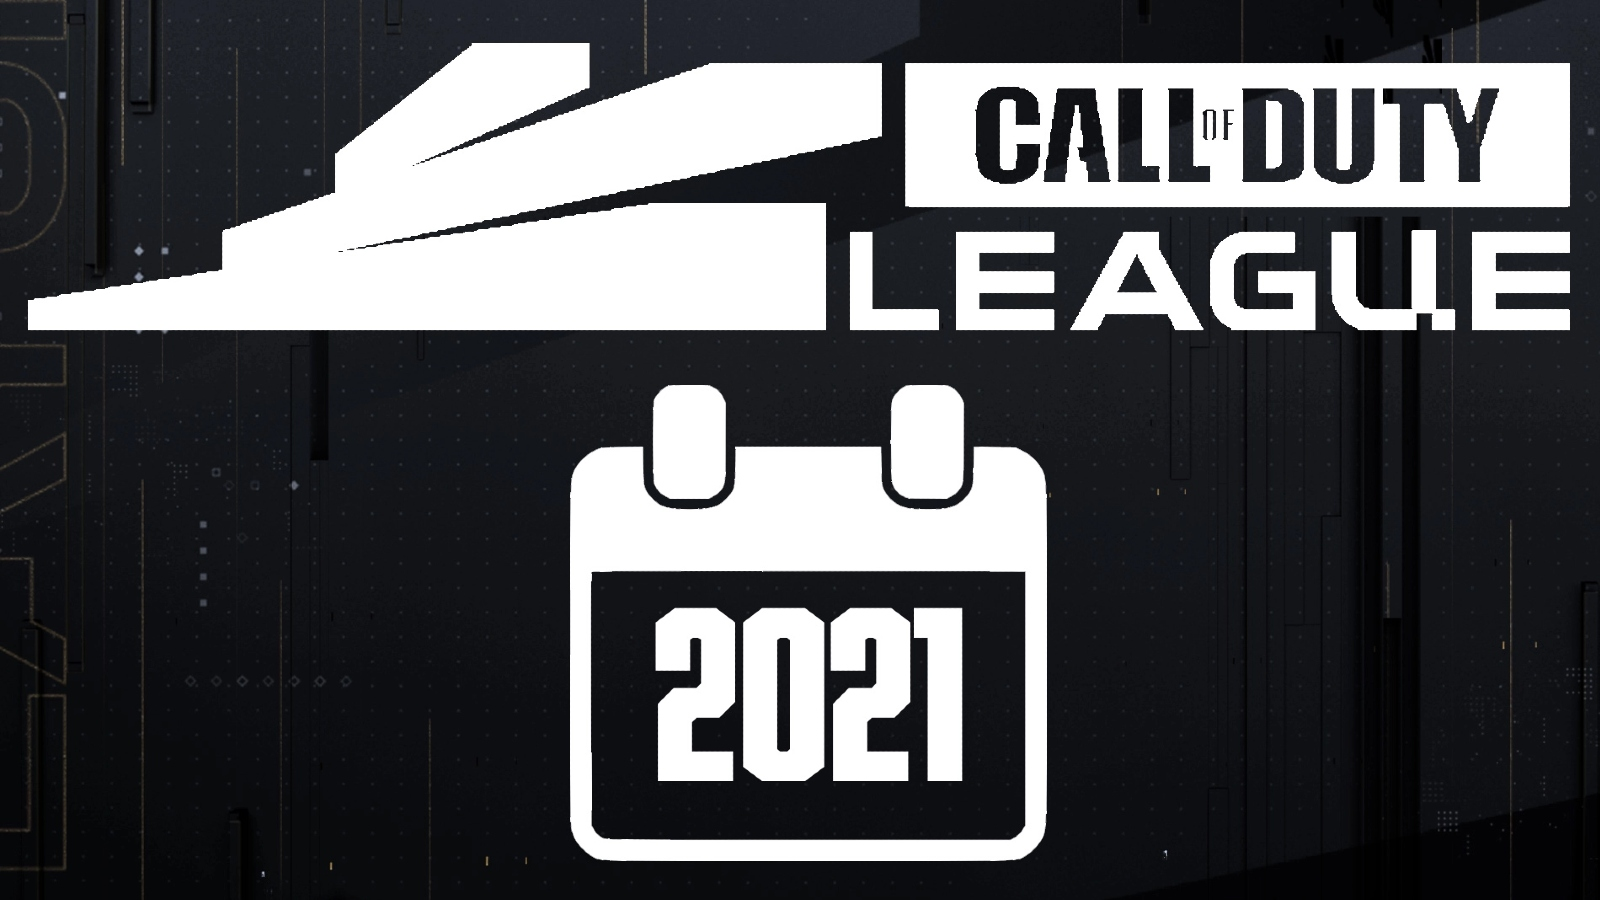 call of duty league 2021 dates announced